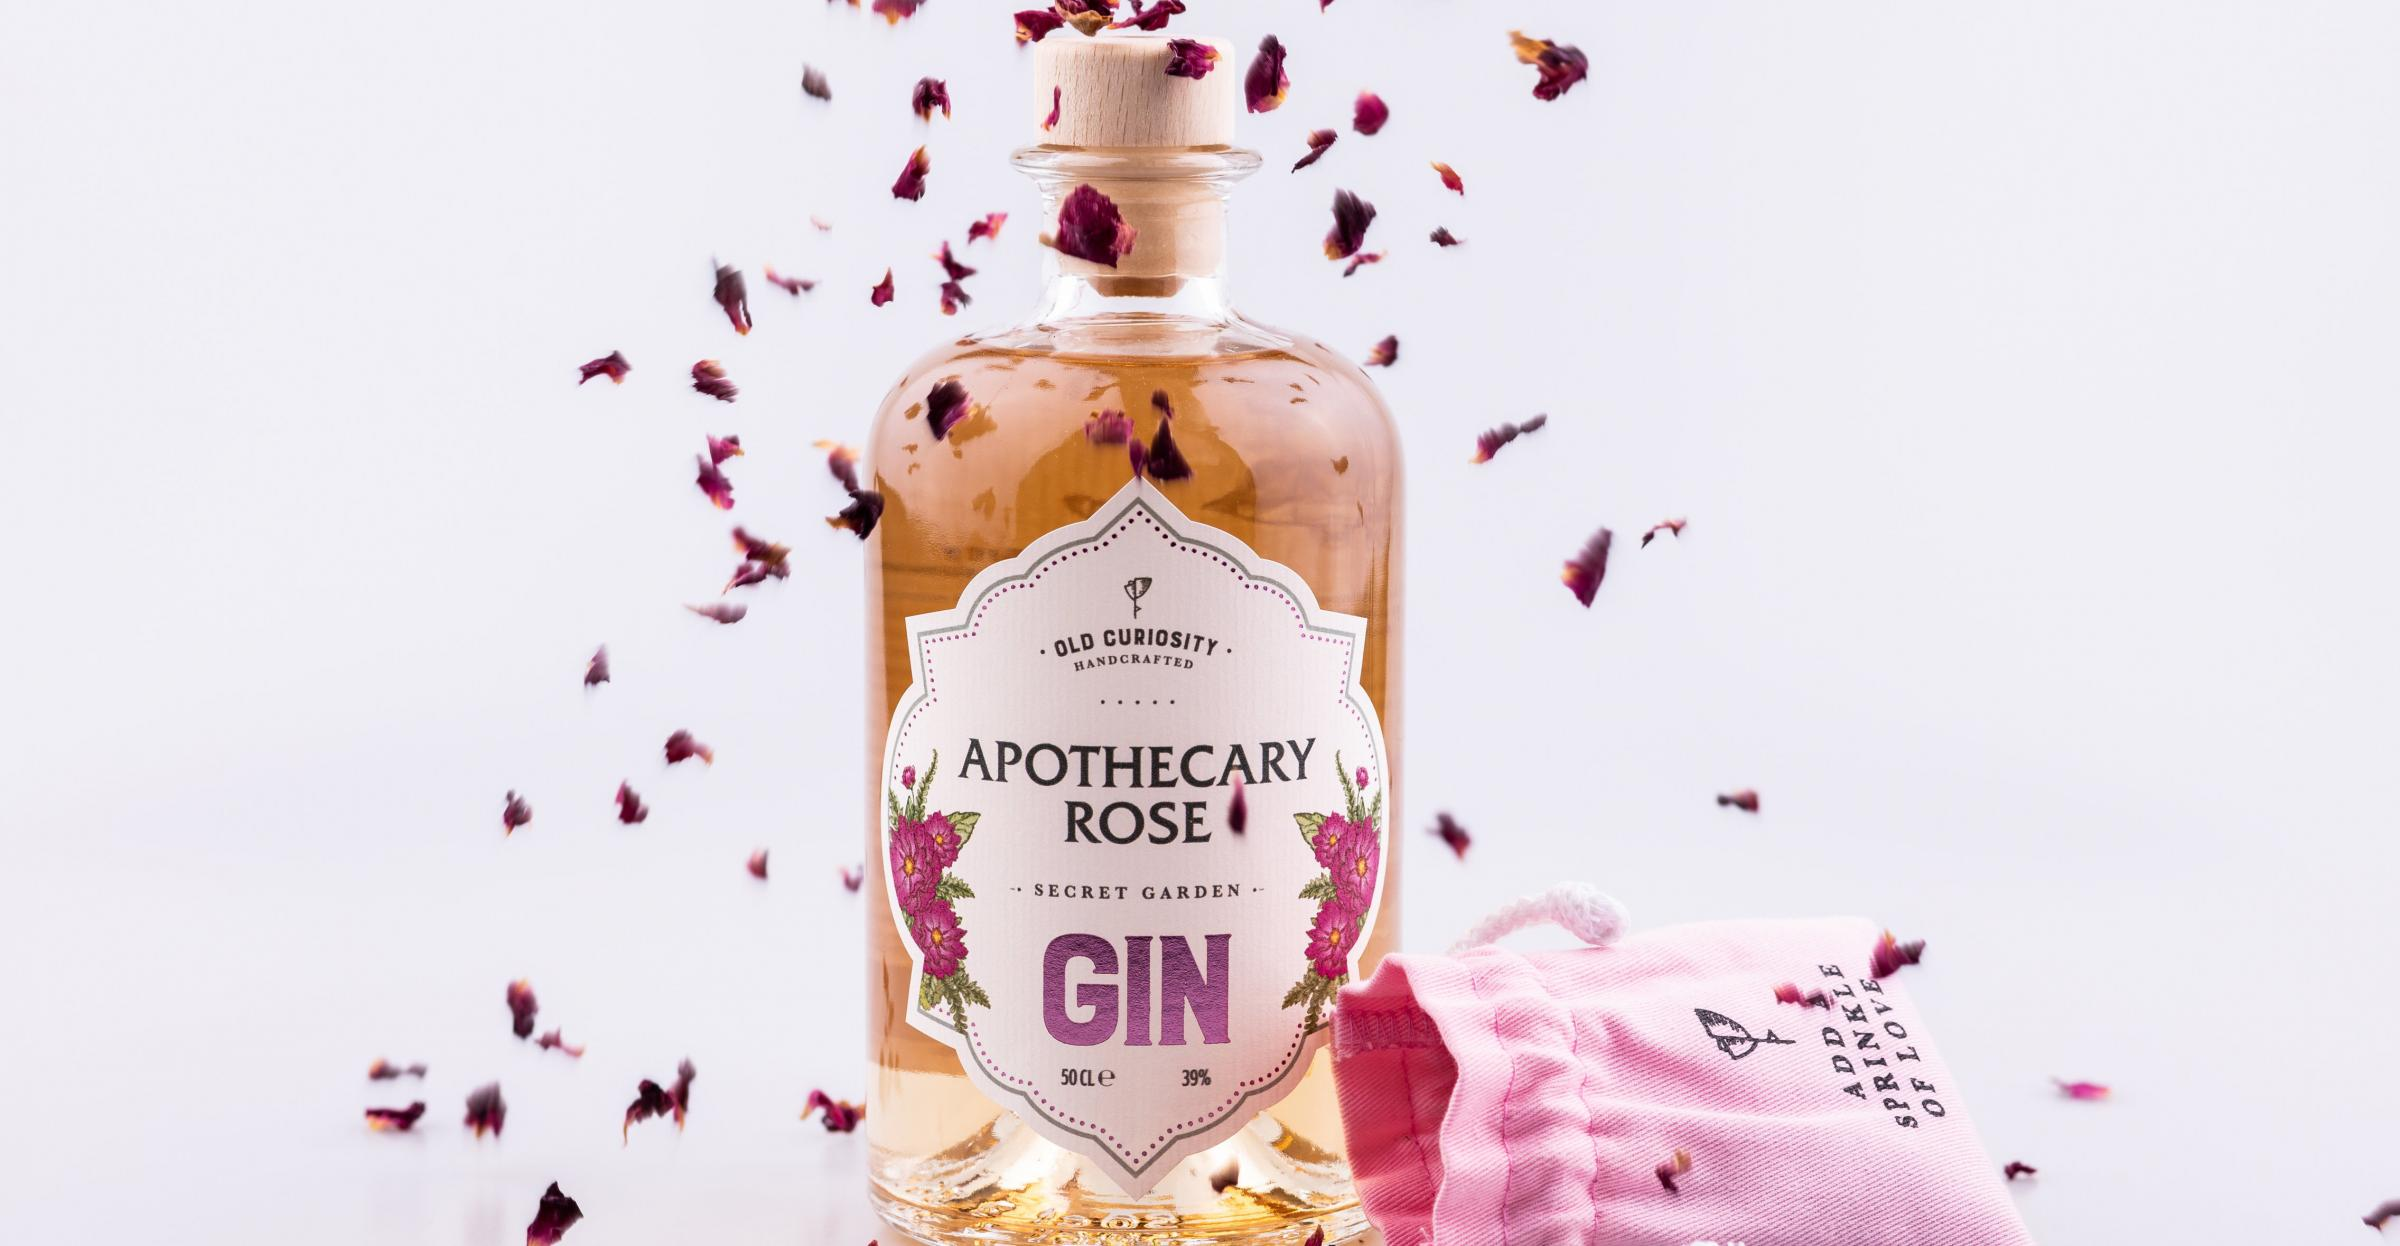 The gin boasts colour-changing properties